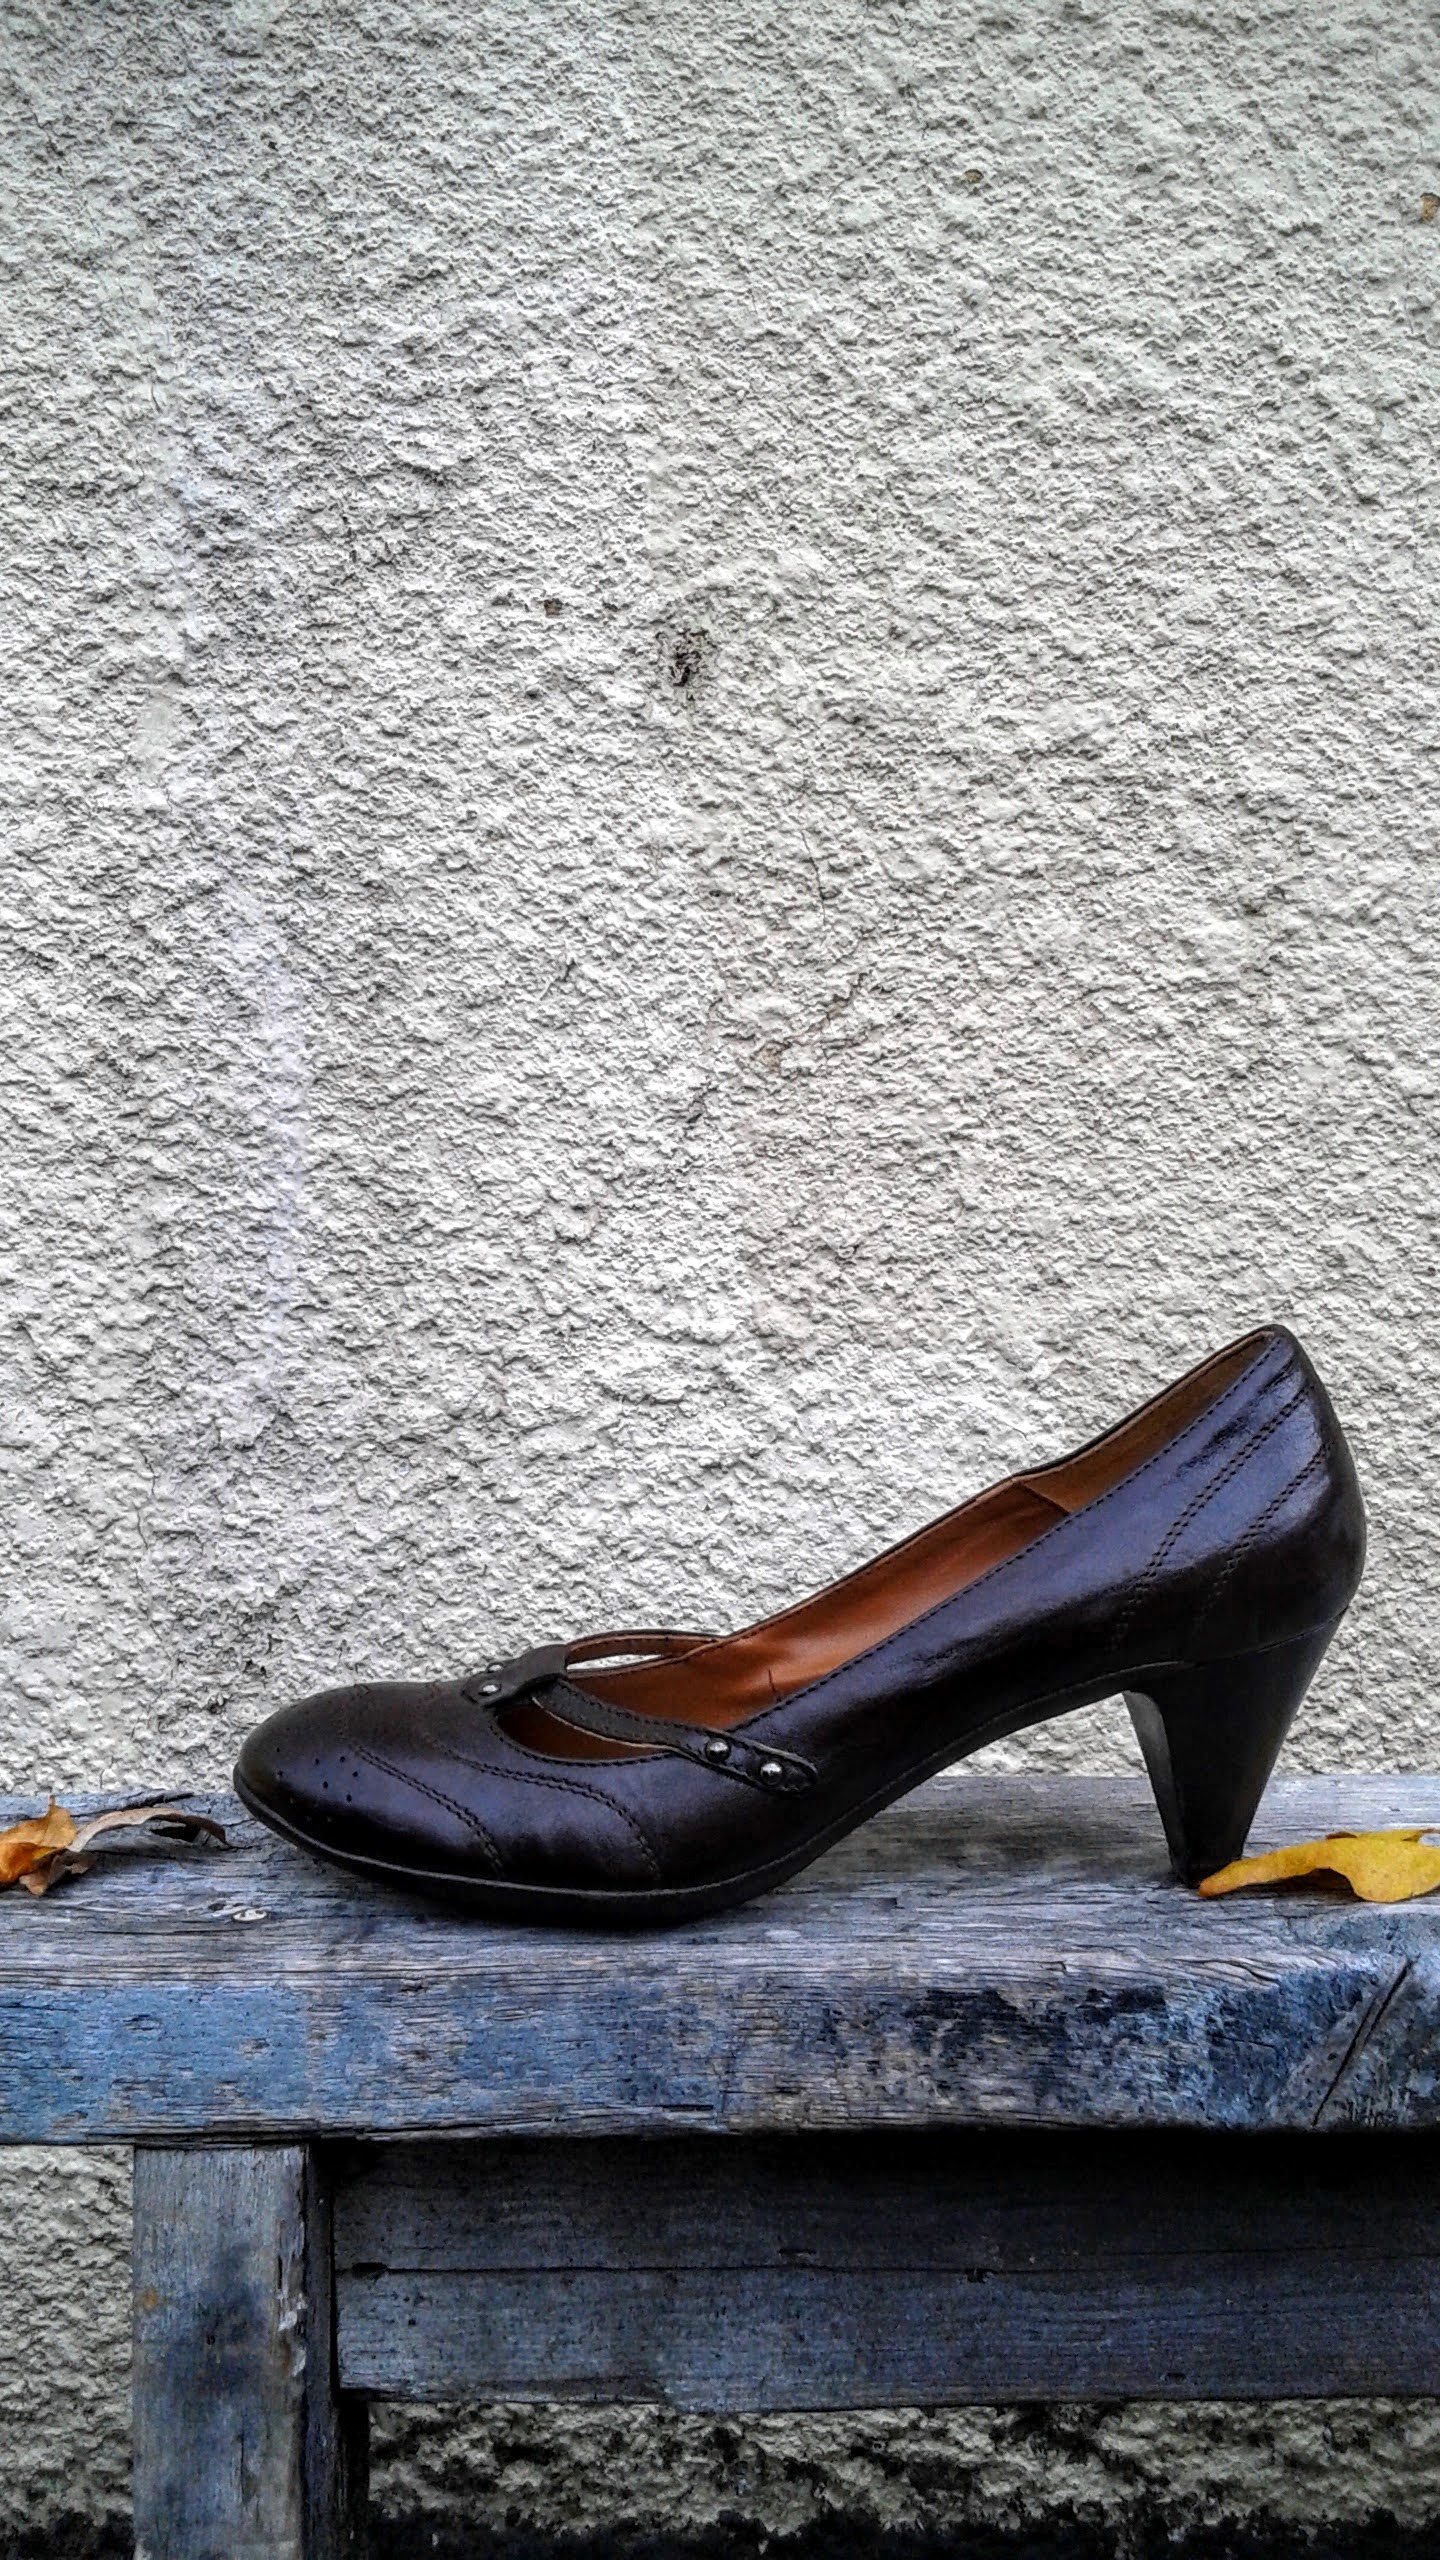 Gravity Pope shoes; S9, $62